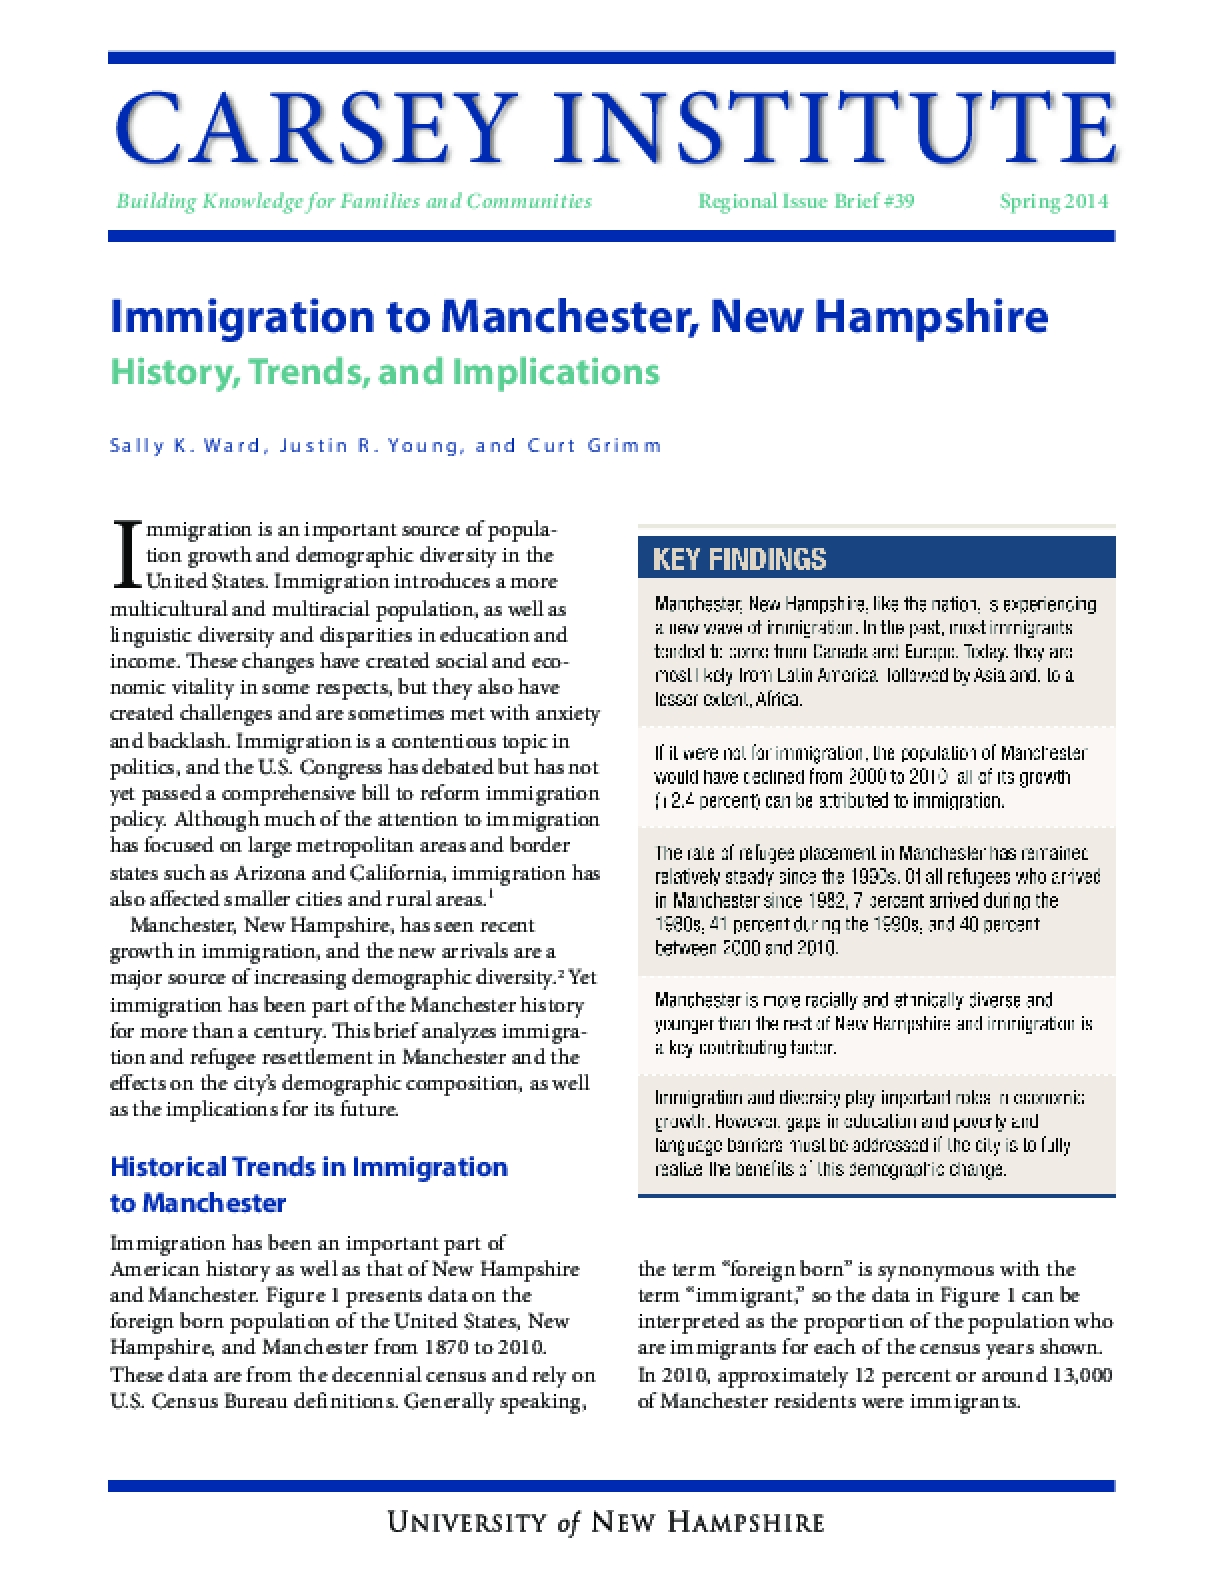 Immigration to Manchester, New Hampshire